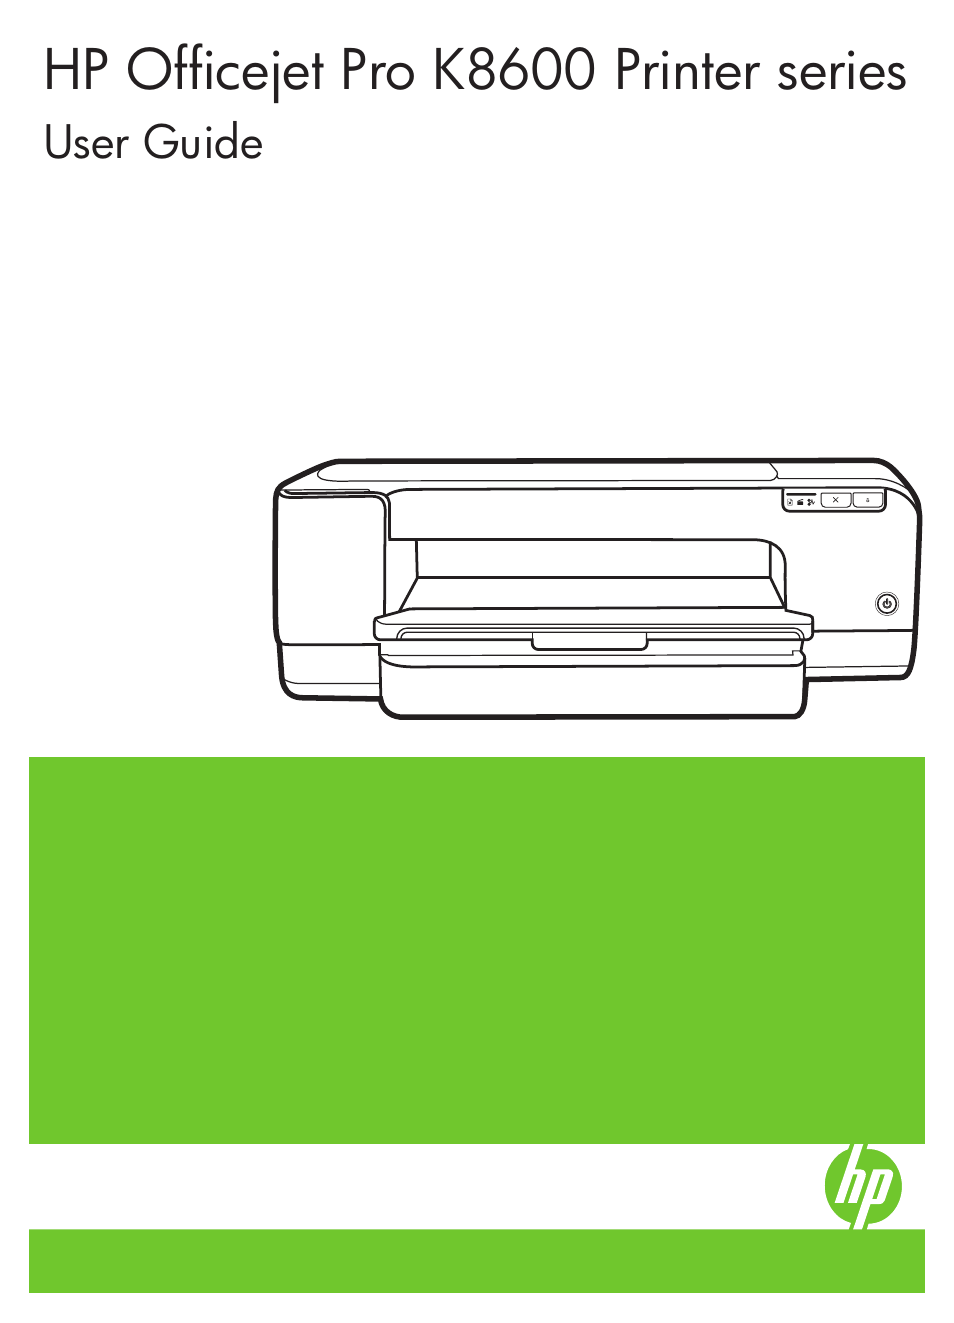 hp officejet pro k8600 printer user manual 108 pages rh manualsdir com hp officejet pro k8600 manual pdf hp officejet pro k8600 manuel